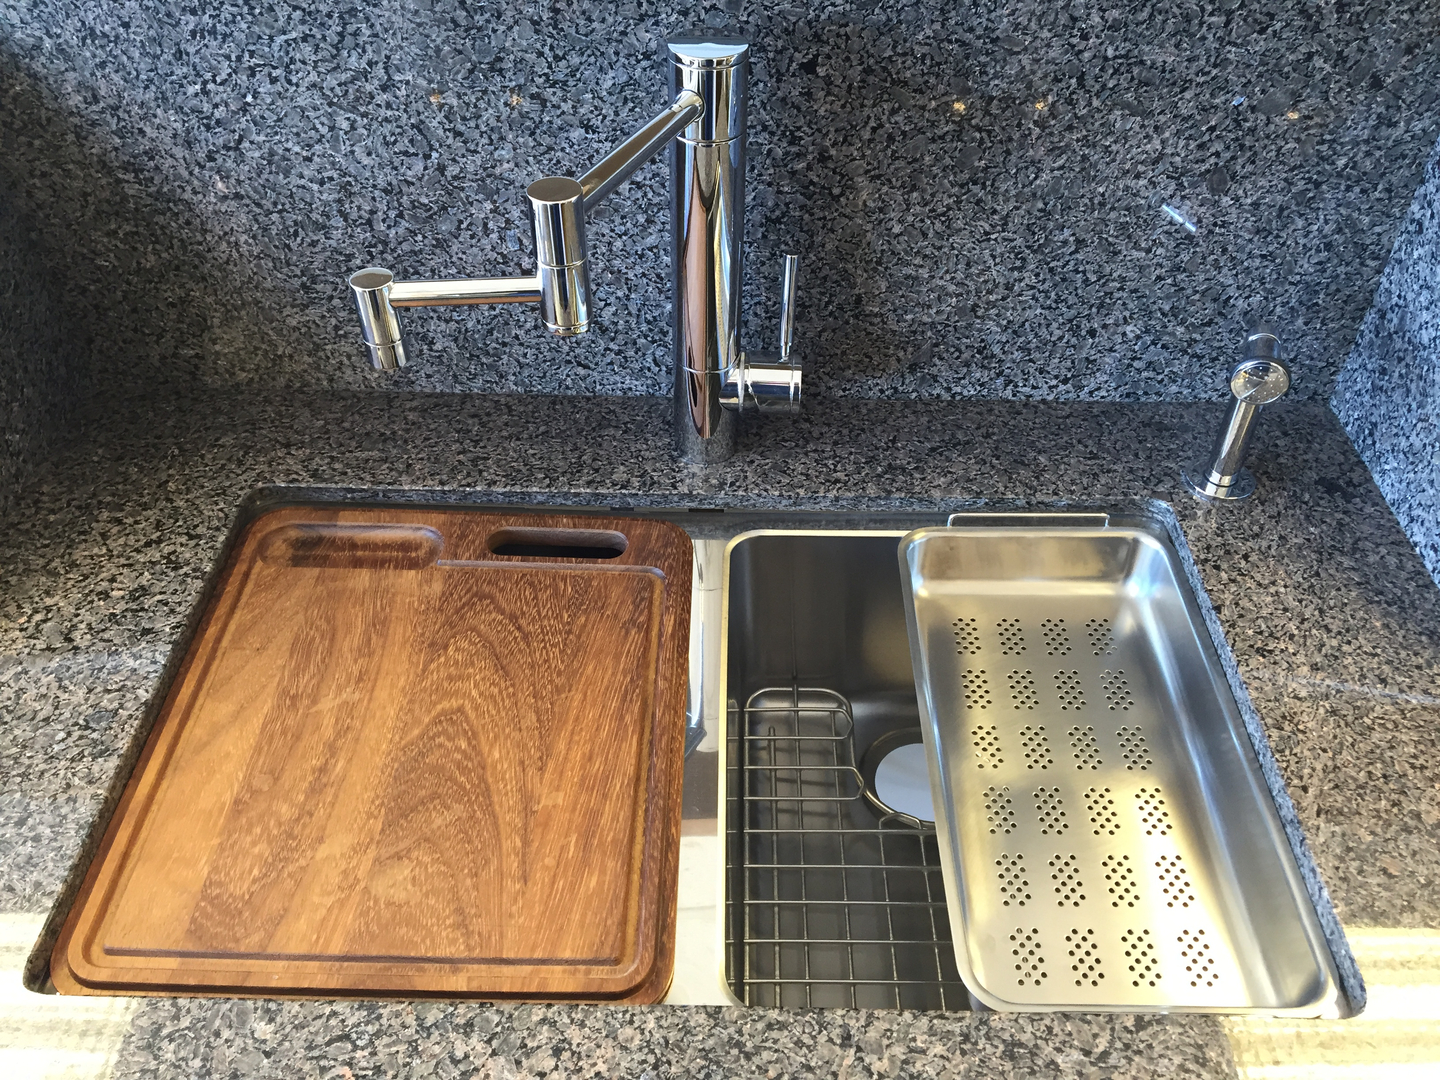 kitchen faucets and sinks in denver, co